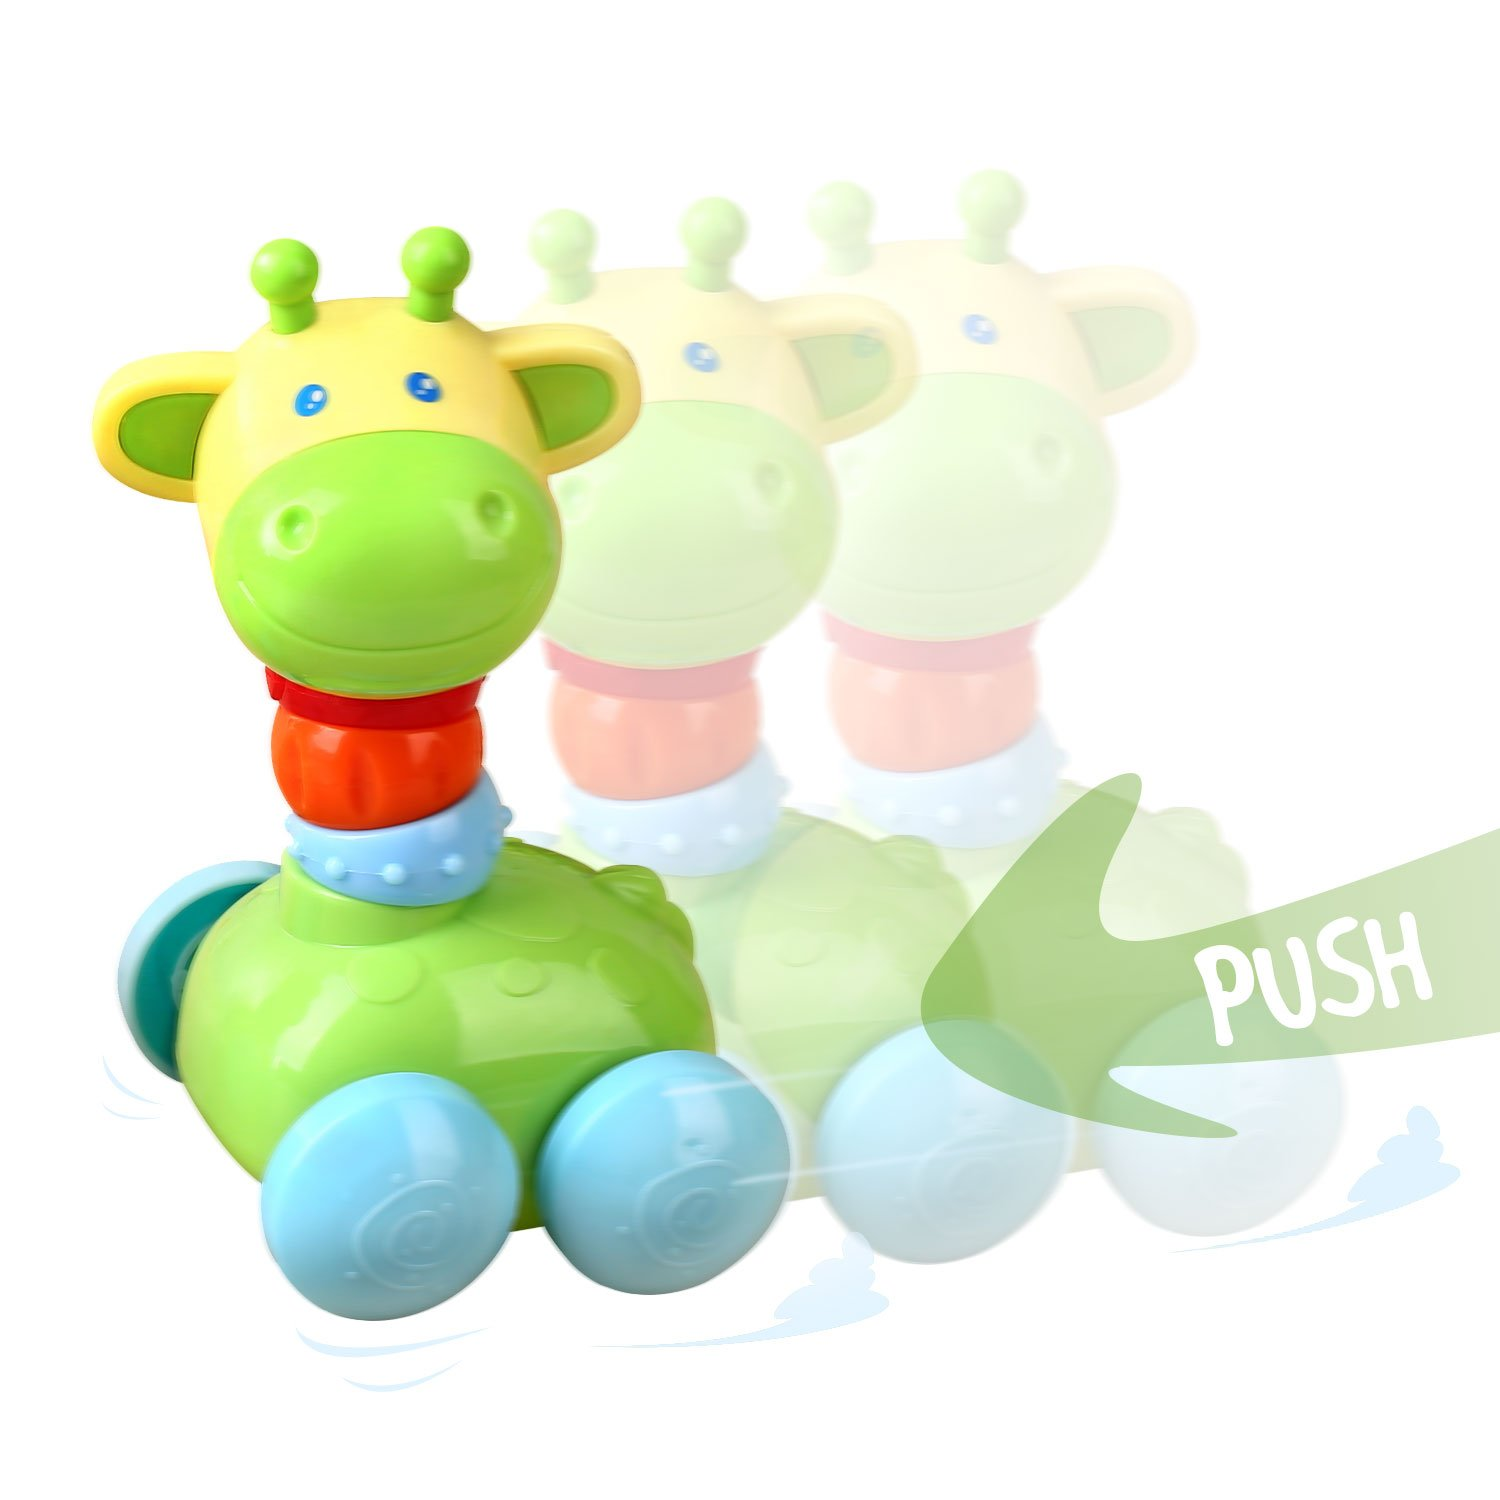 Baby Rattle Toys Play Set by Peradix - Push and Go Giraffe Car with Wheels to Grab and Spin Hand Bell Shaker Nursery Toys for Crawling Newborn Baby, Infant Toddler Gift